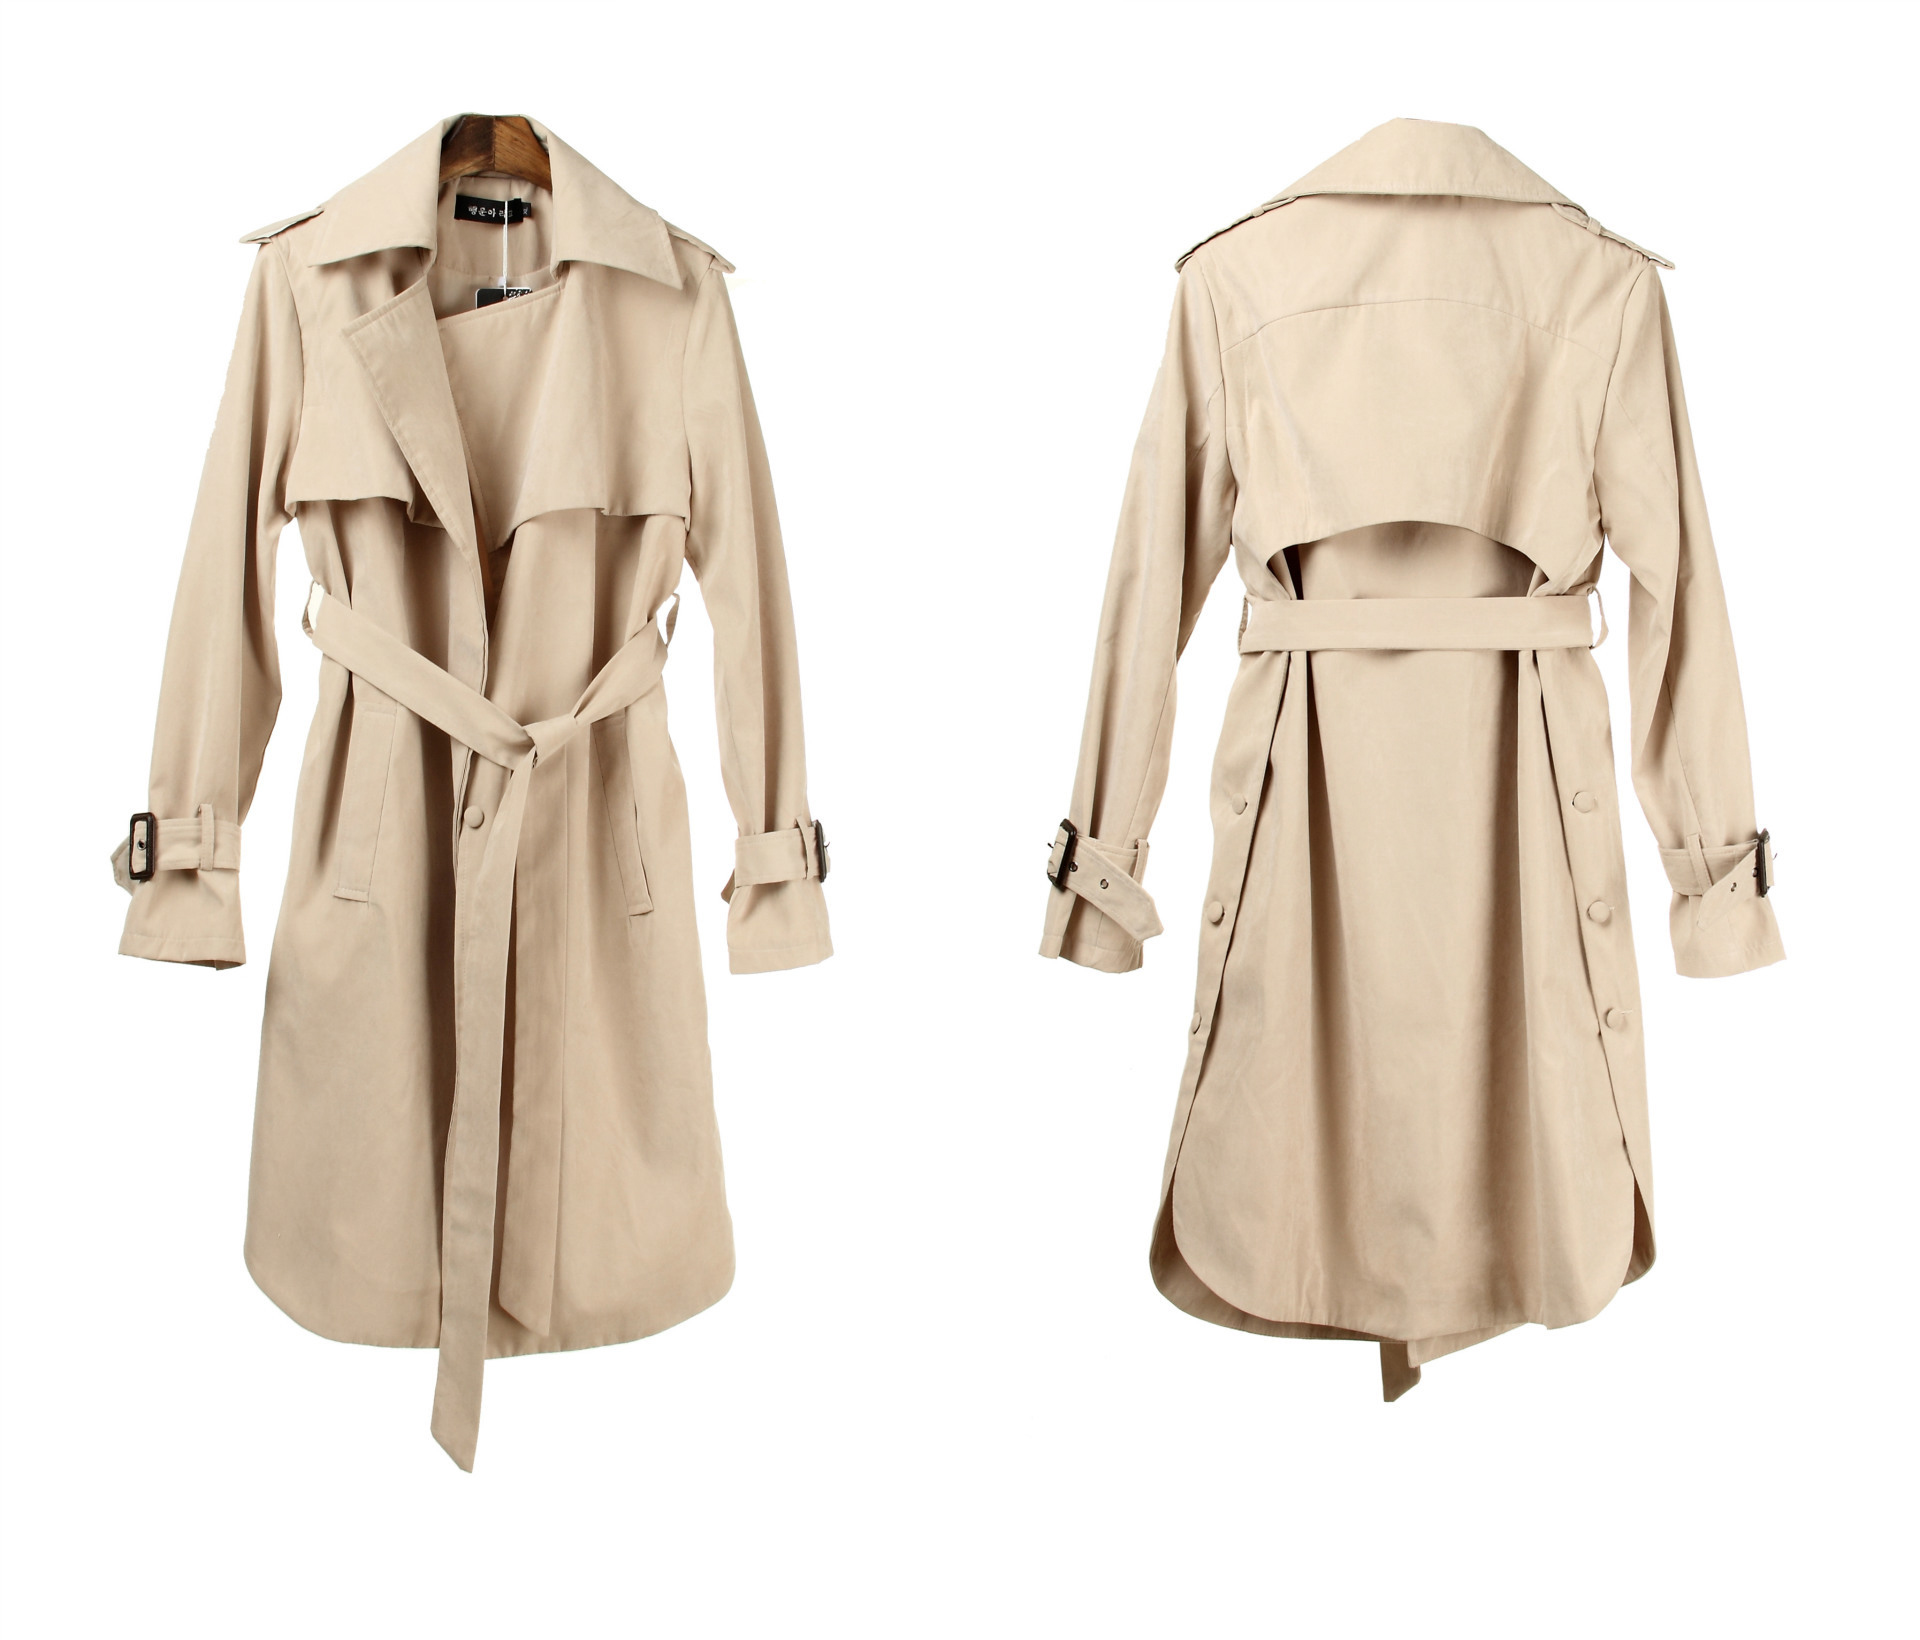 JAZZEVAR 19 new spring autumn fashion Casual women's khaki Trench Coat long Outerwear loose clothes for lady with belt 850115 12